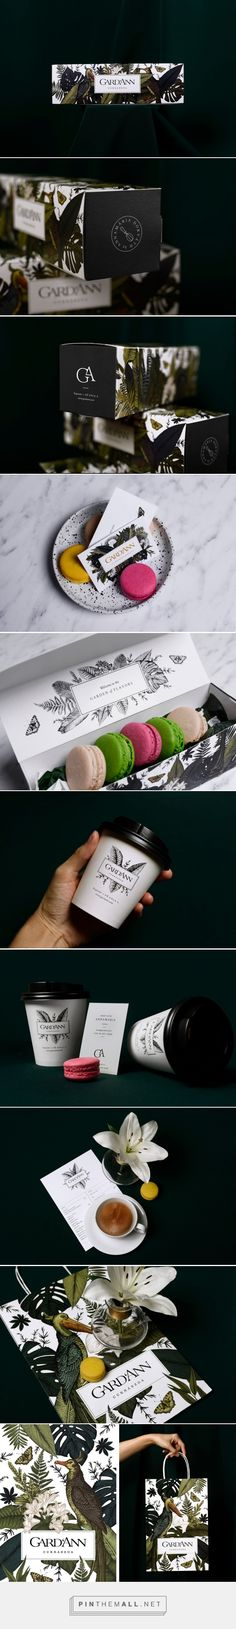 Gard'Ann Patisserie - Packaging of the World - Creative Package Design Gallery -. Cheese Packaging, Food Packaging, Cheese Table Wedding, Cheese Sauce For Cauliflower, Cheese Design, Cheese Cake Filling, Best Cheese, Vegan Cheese, Fish And Meat